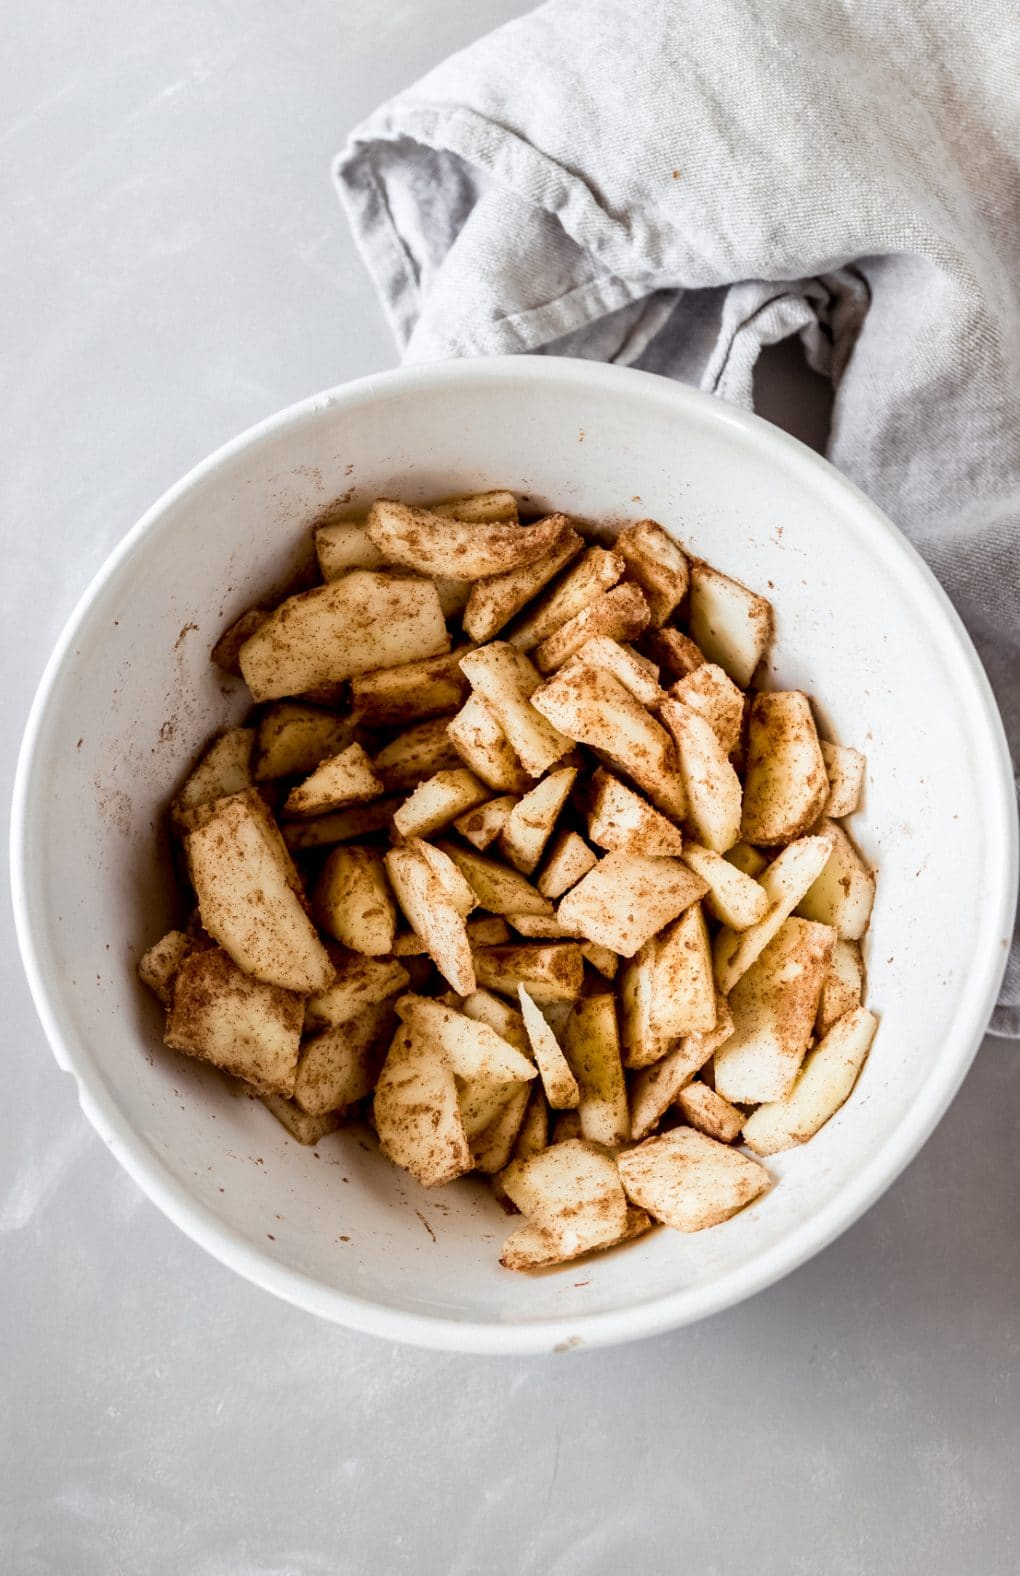 a bowl of sliced apples mixed with cinnamon and sugar